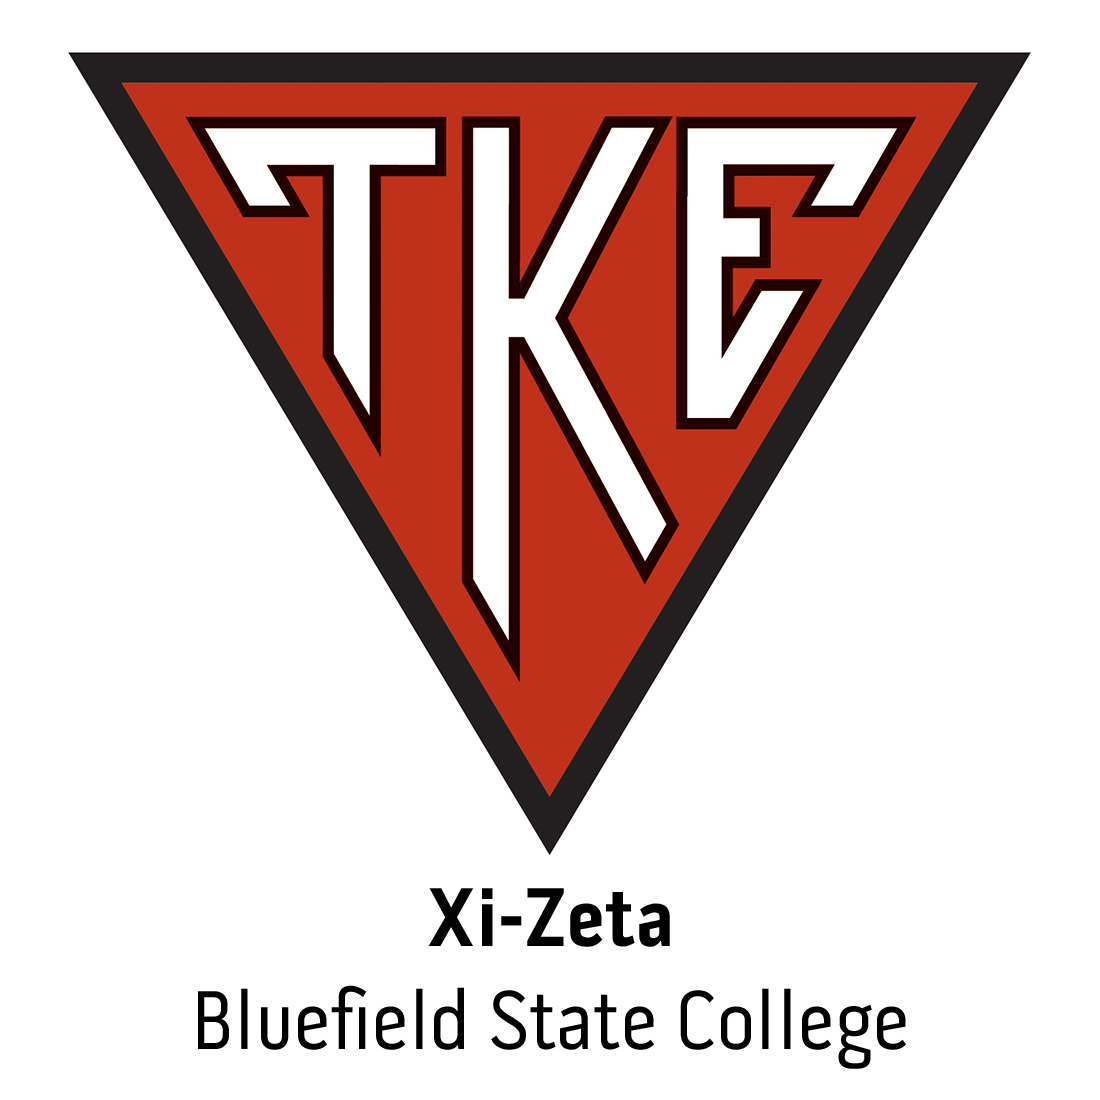 Xi-Zeta Chapter at Bluefield State College